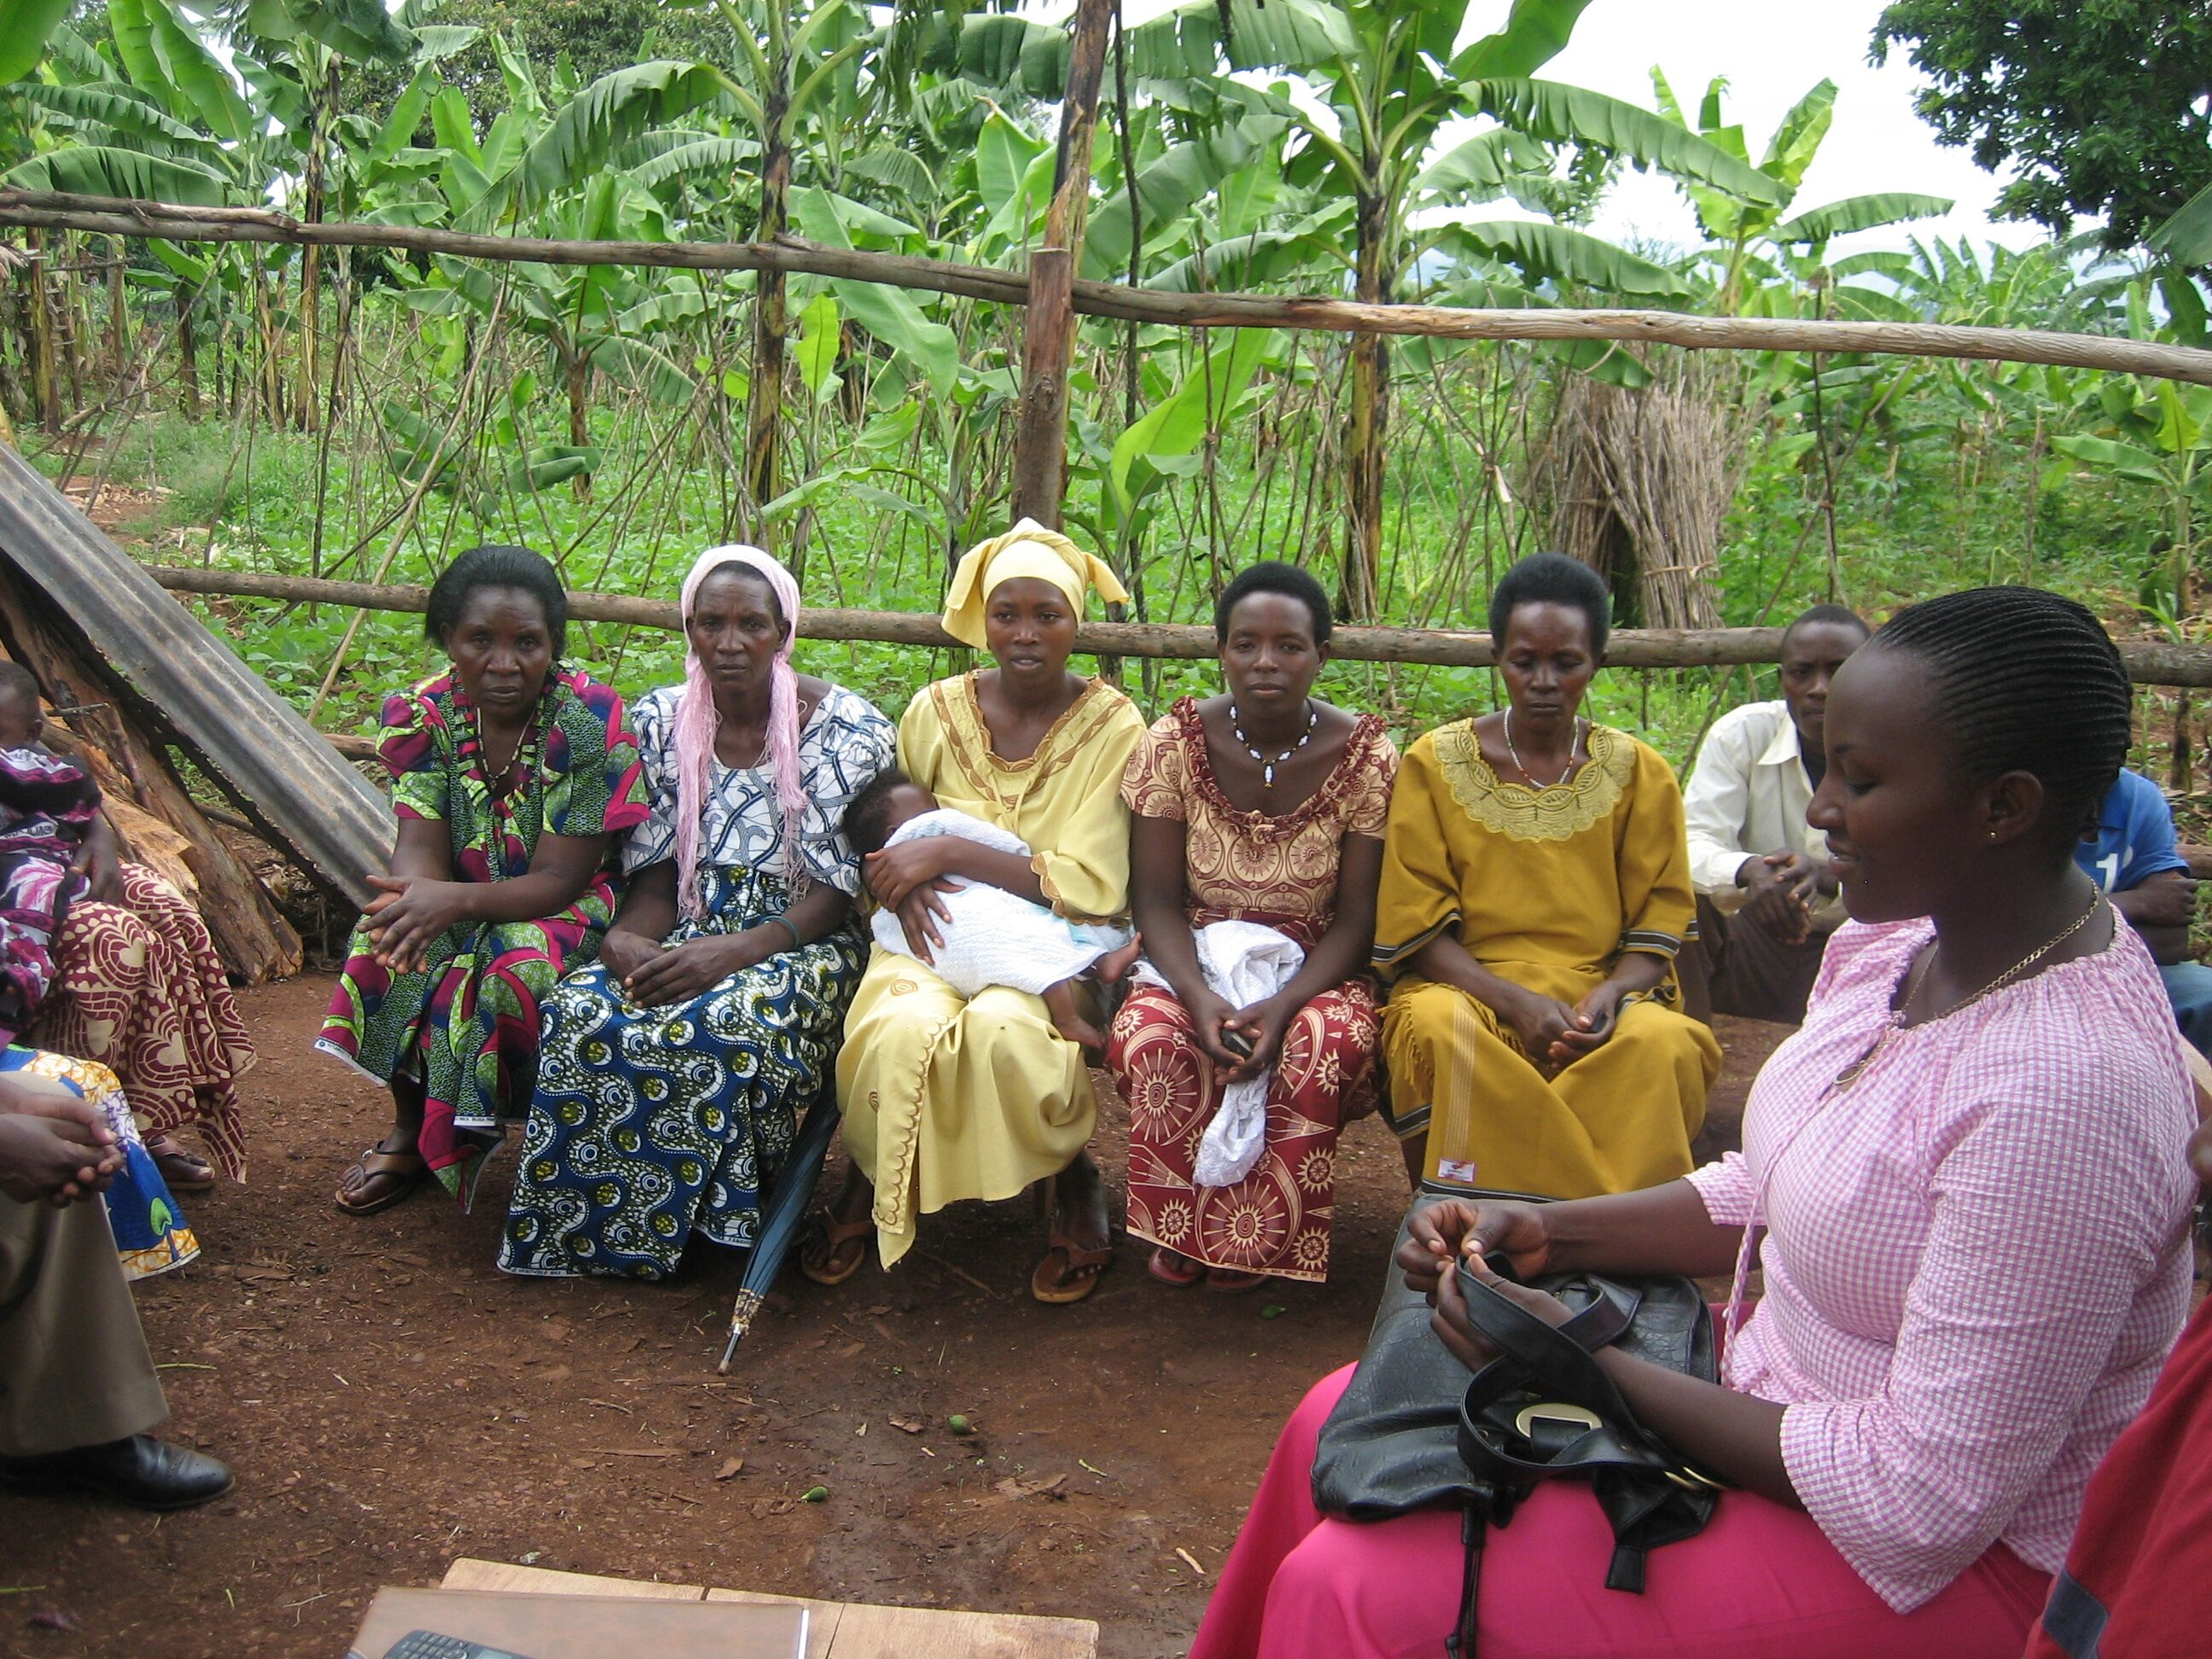 SHE trained 28 Community Health Workers in Rwanda on health and business skills.